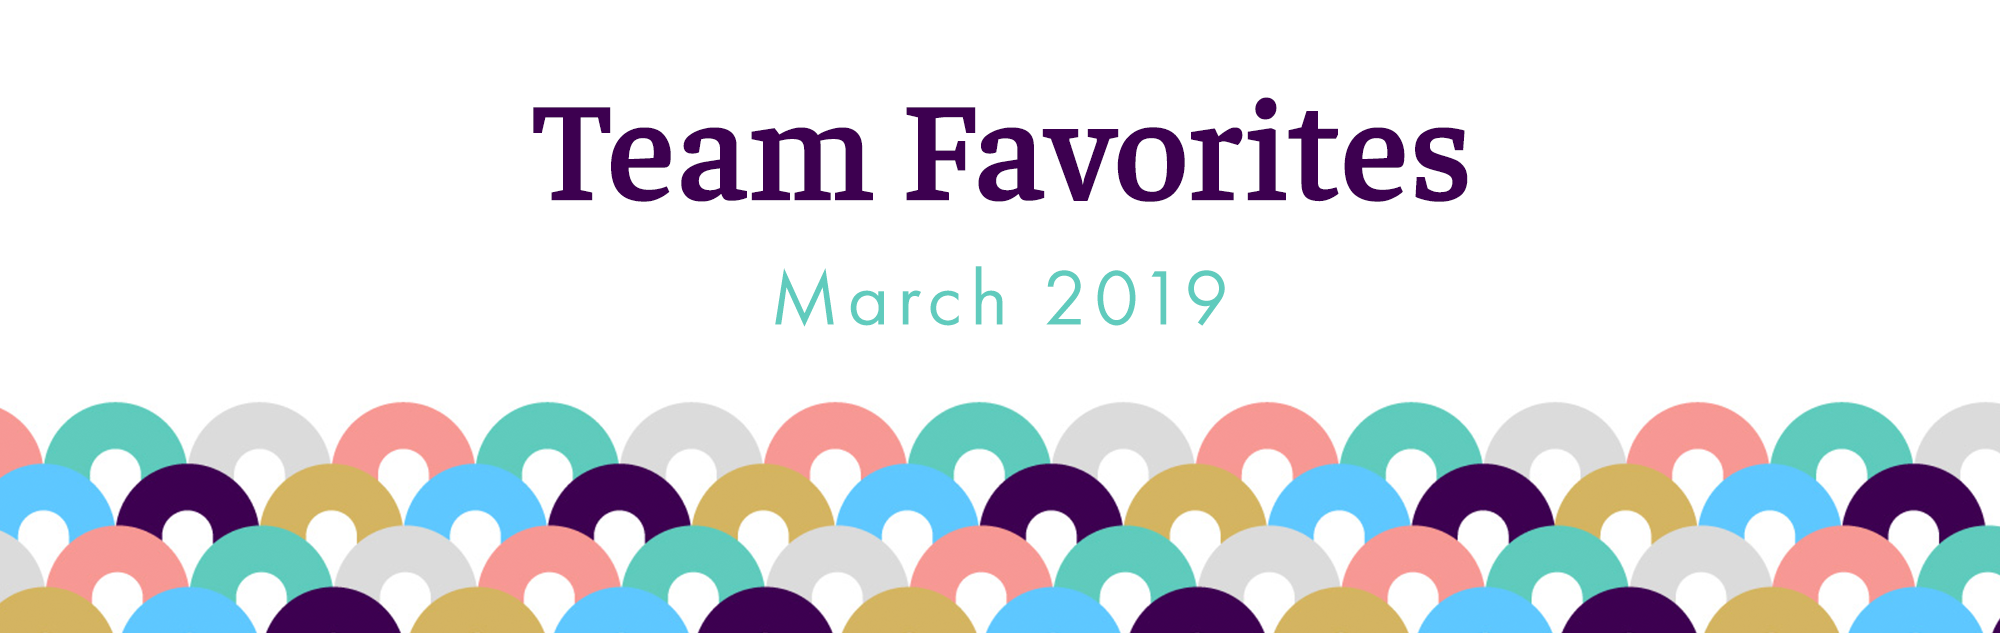 Team Favs Banner - MARCH 2019.png